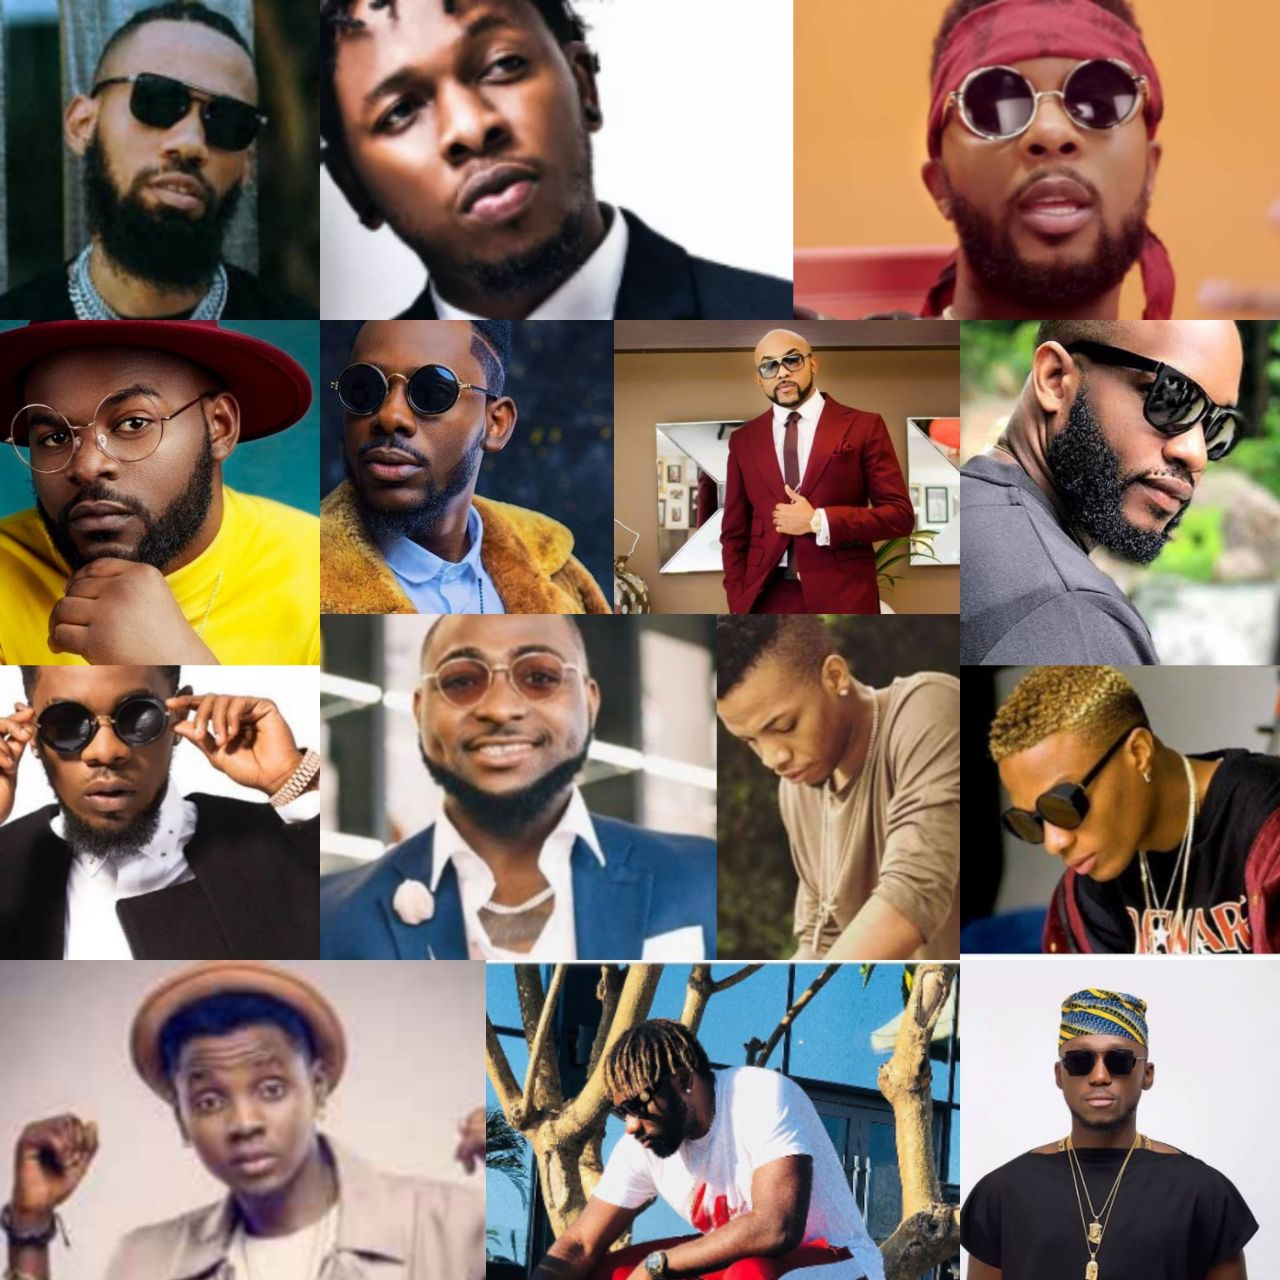 Entry 20 – Top 5 Sexiest Male Artistes In Nigeria